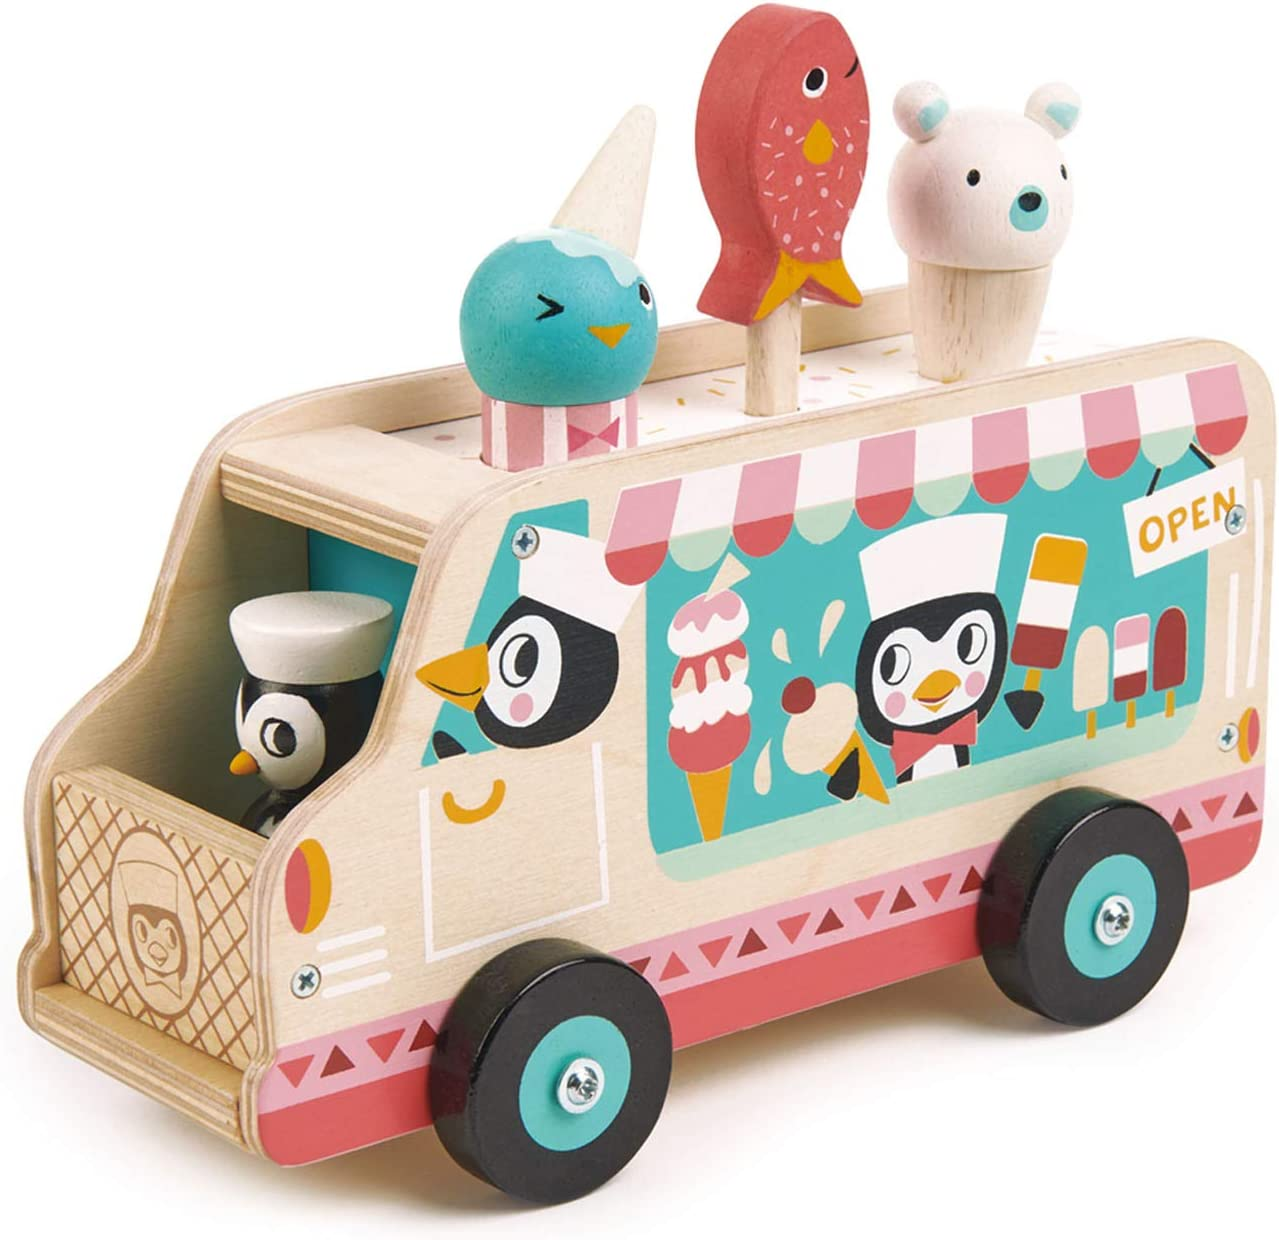 Tender Leaf Toys - Penguin's Gelato Van - Food Truck Style Pretend Food Play Ice Cream Wooden Vehicle - Encourage Role Play and Develops Social Skills for Children 3+